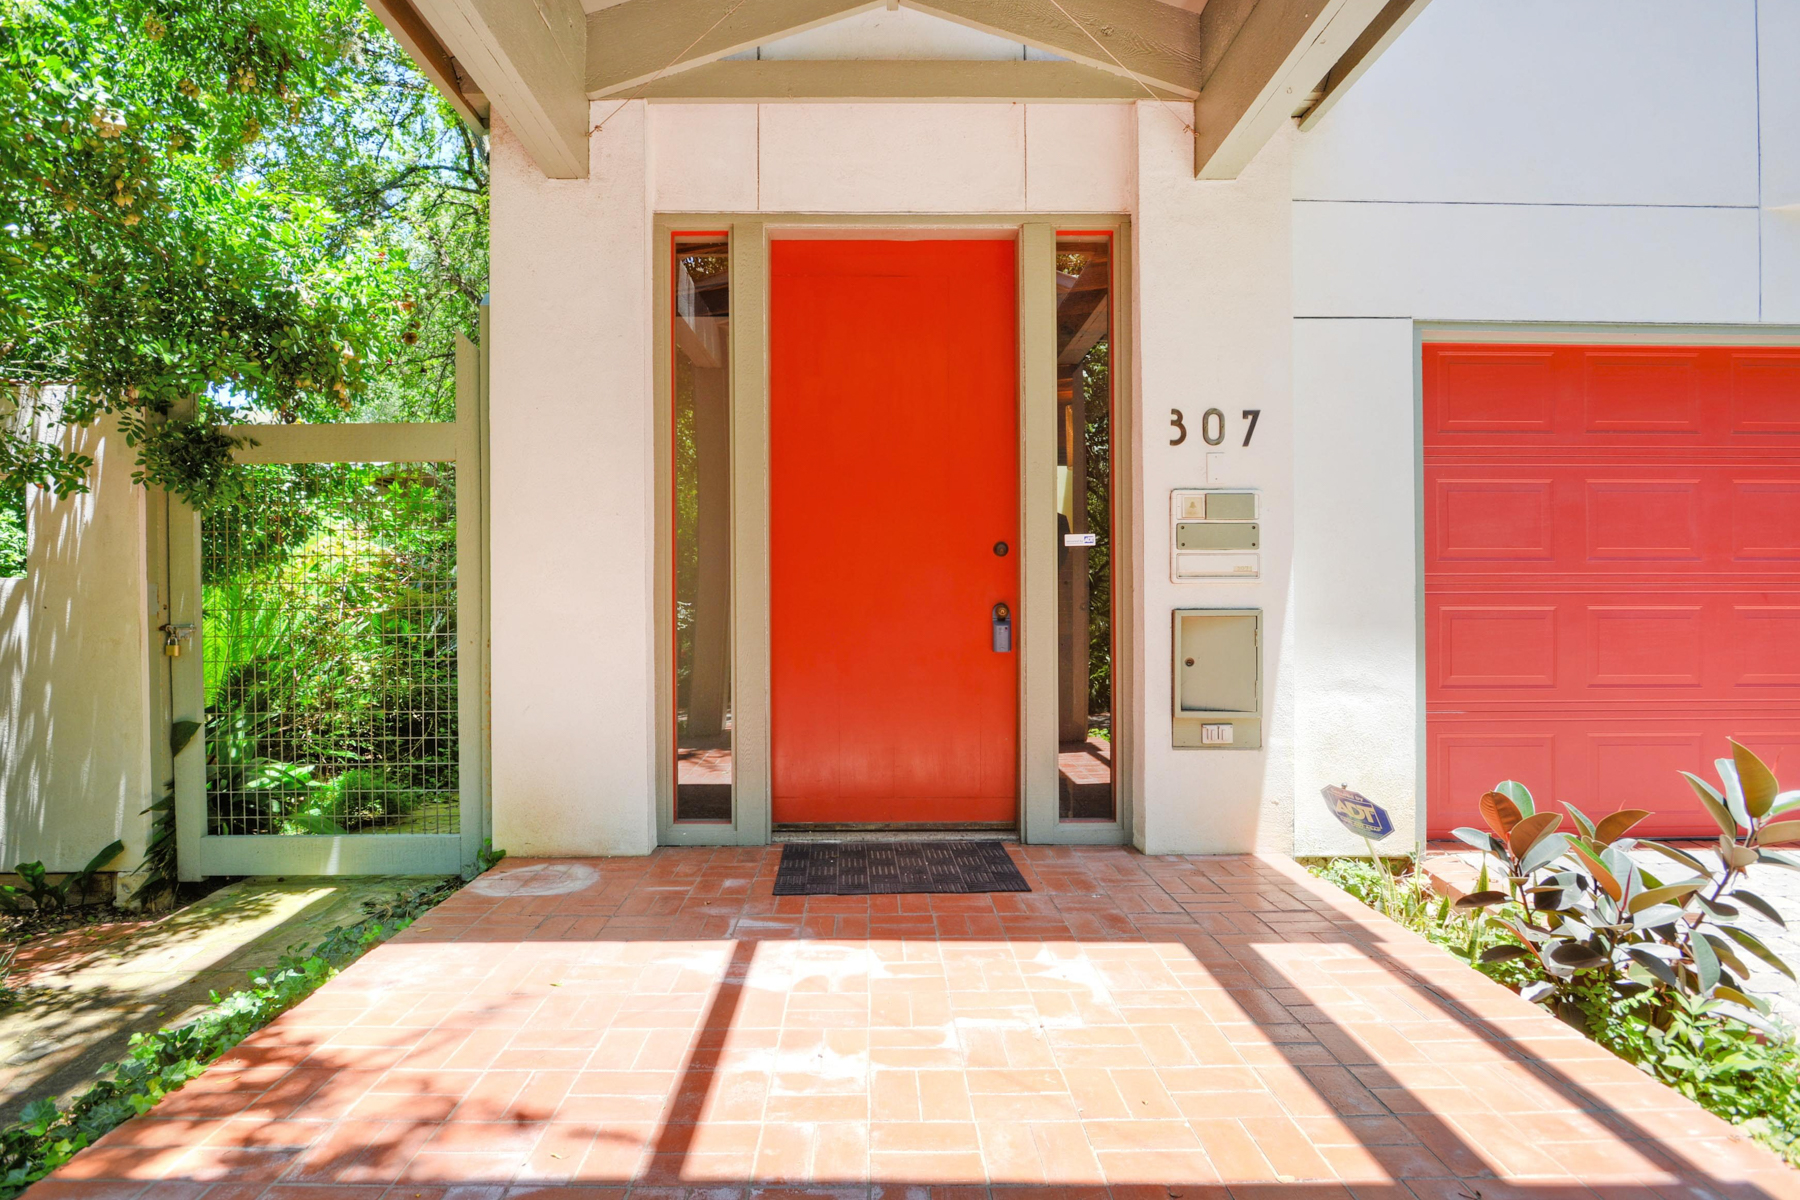 Additional photo for property listing at Delightful Retreat in Alamo Heights 307 College Blvd San Antonio, Texas 78209 United States